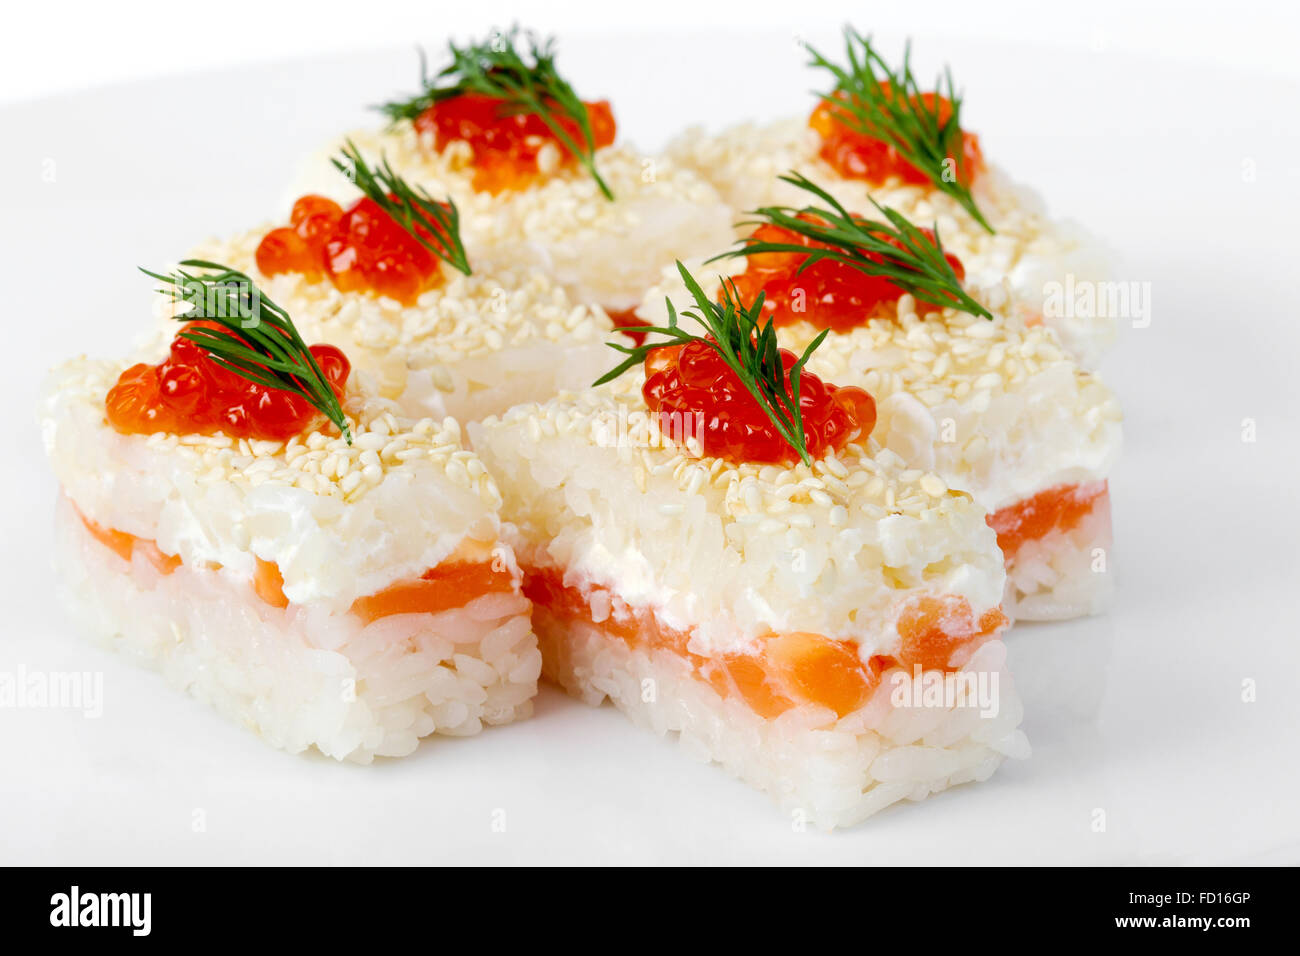 Maki Sushi with Salmon, red caviar. Selective focus - Stock Image